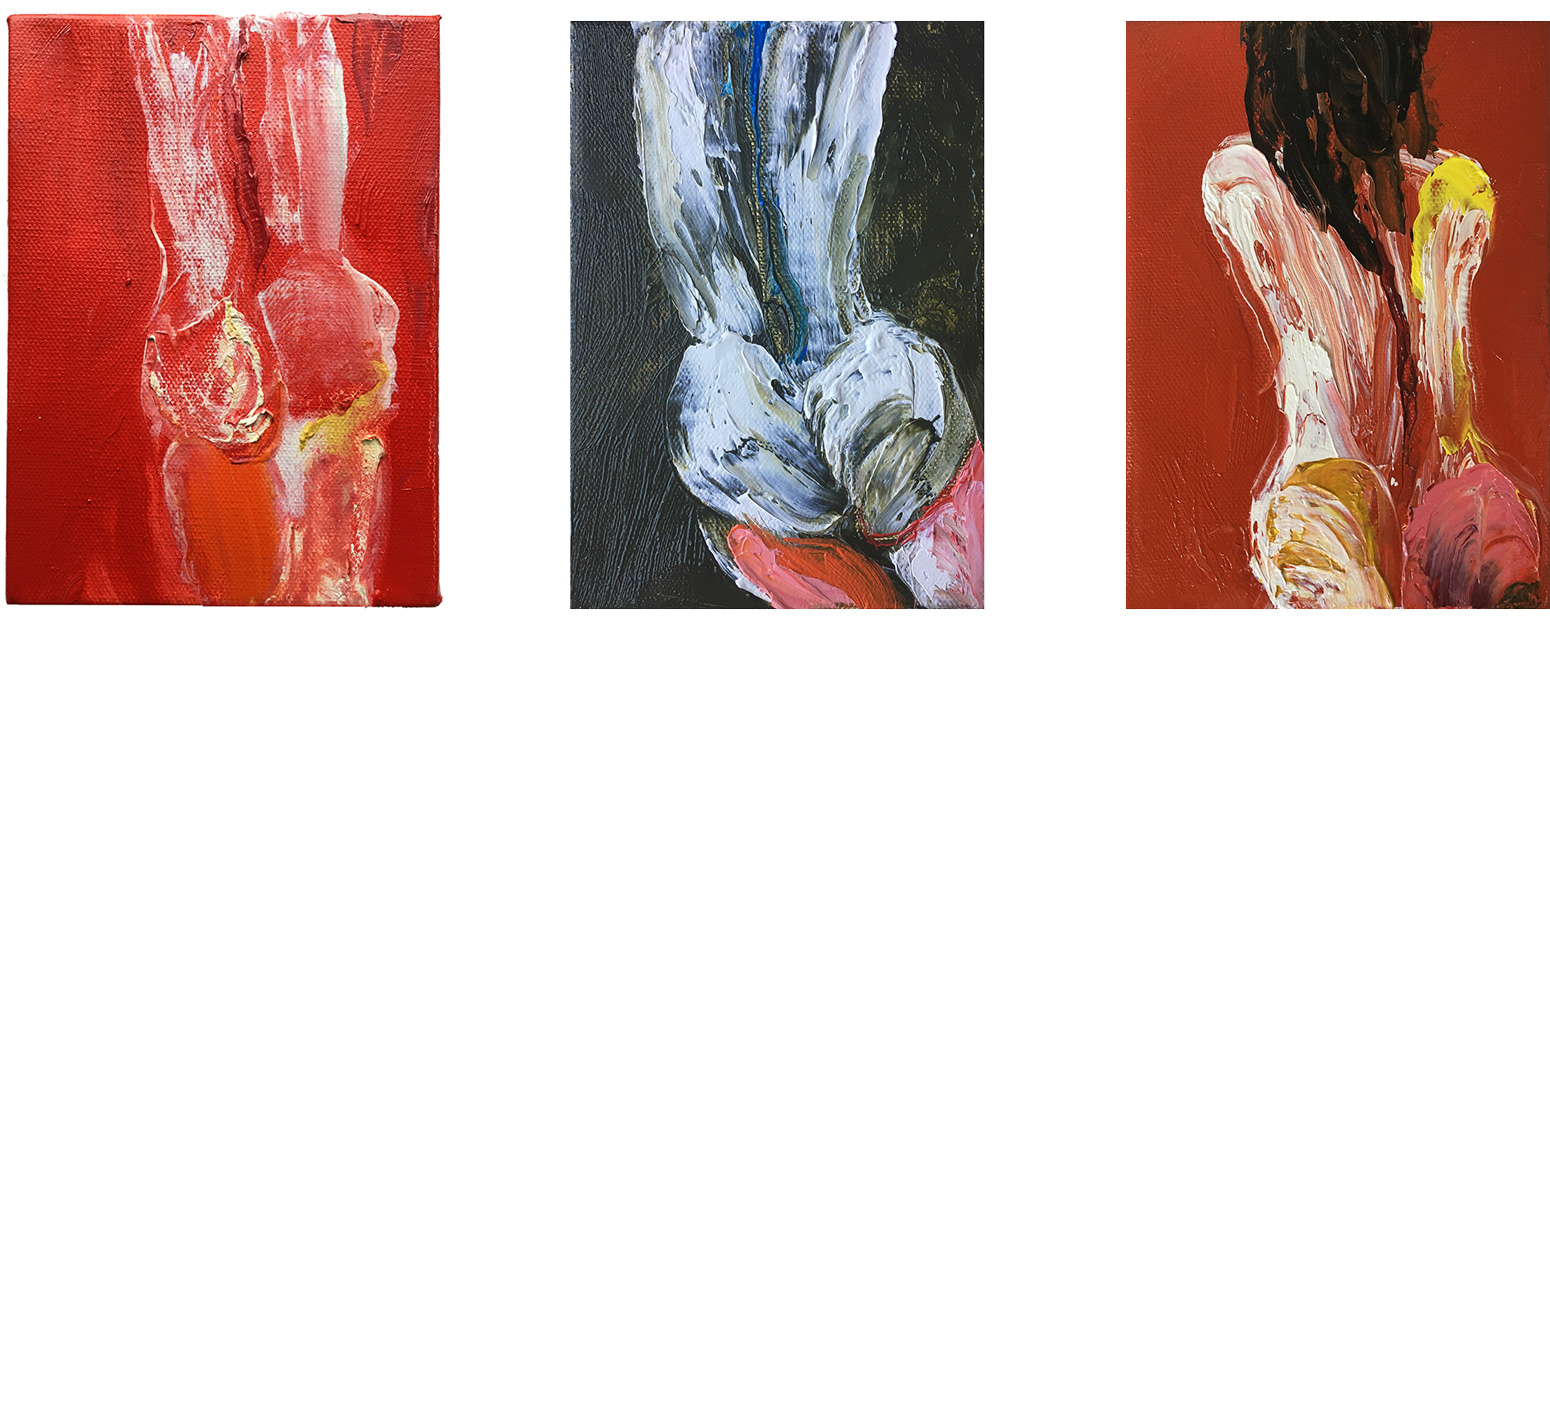 (left-to-right)   Events in the Body: Torso in Cadmium Red Medium    Events in the Body: Torso in Green Earth    Events in the Body: Torso in Mixed Reds   2018 Oil on canvas 7x5 in.